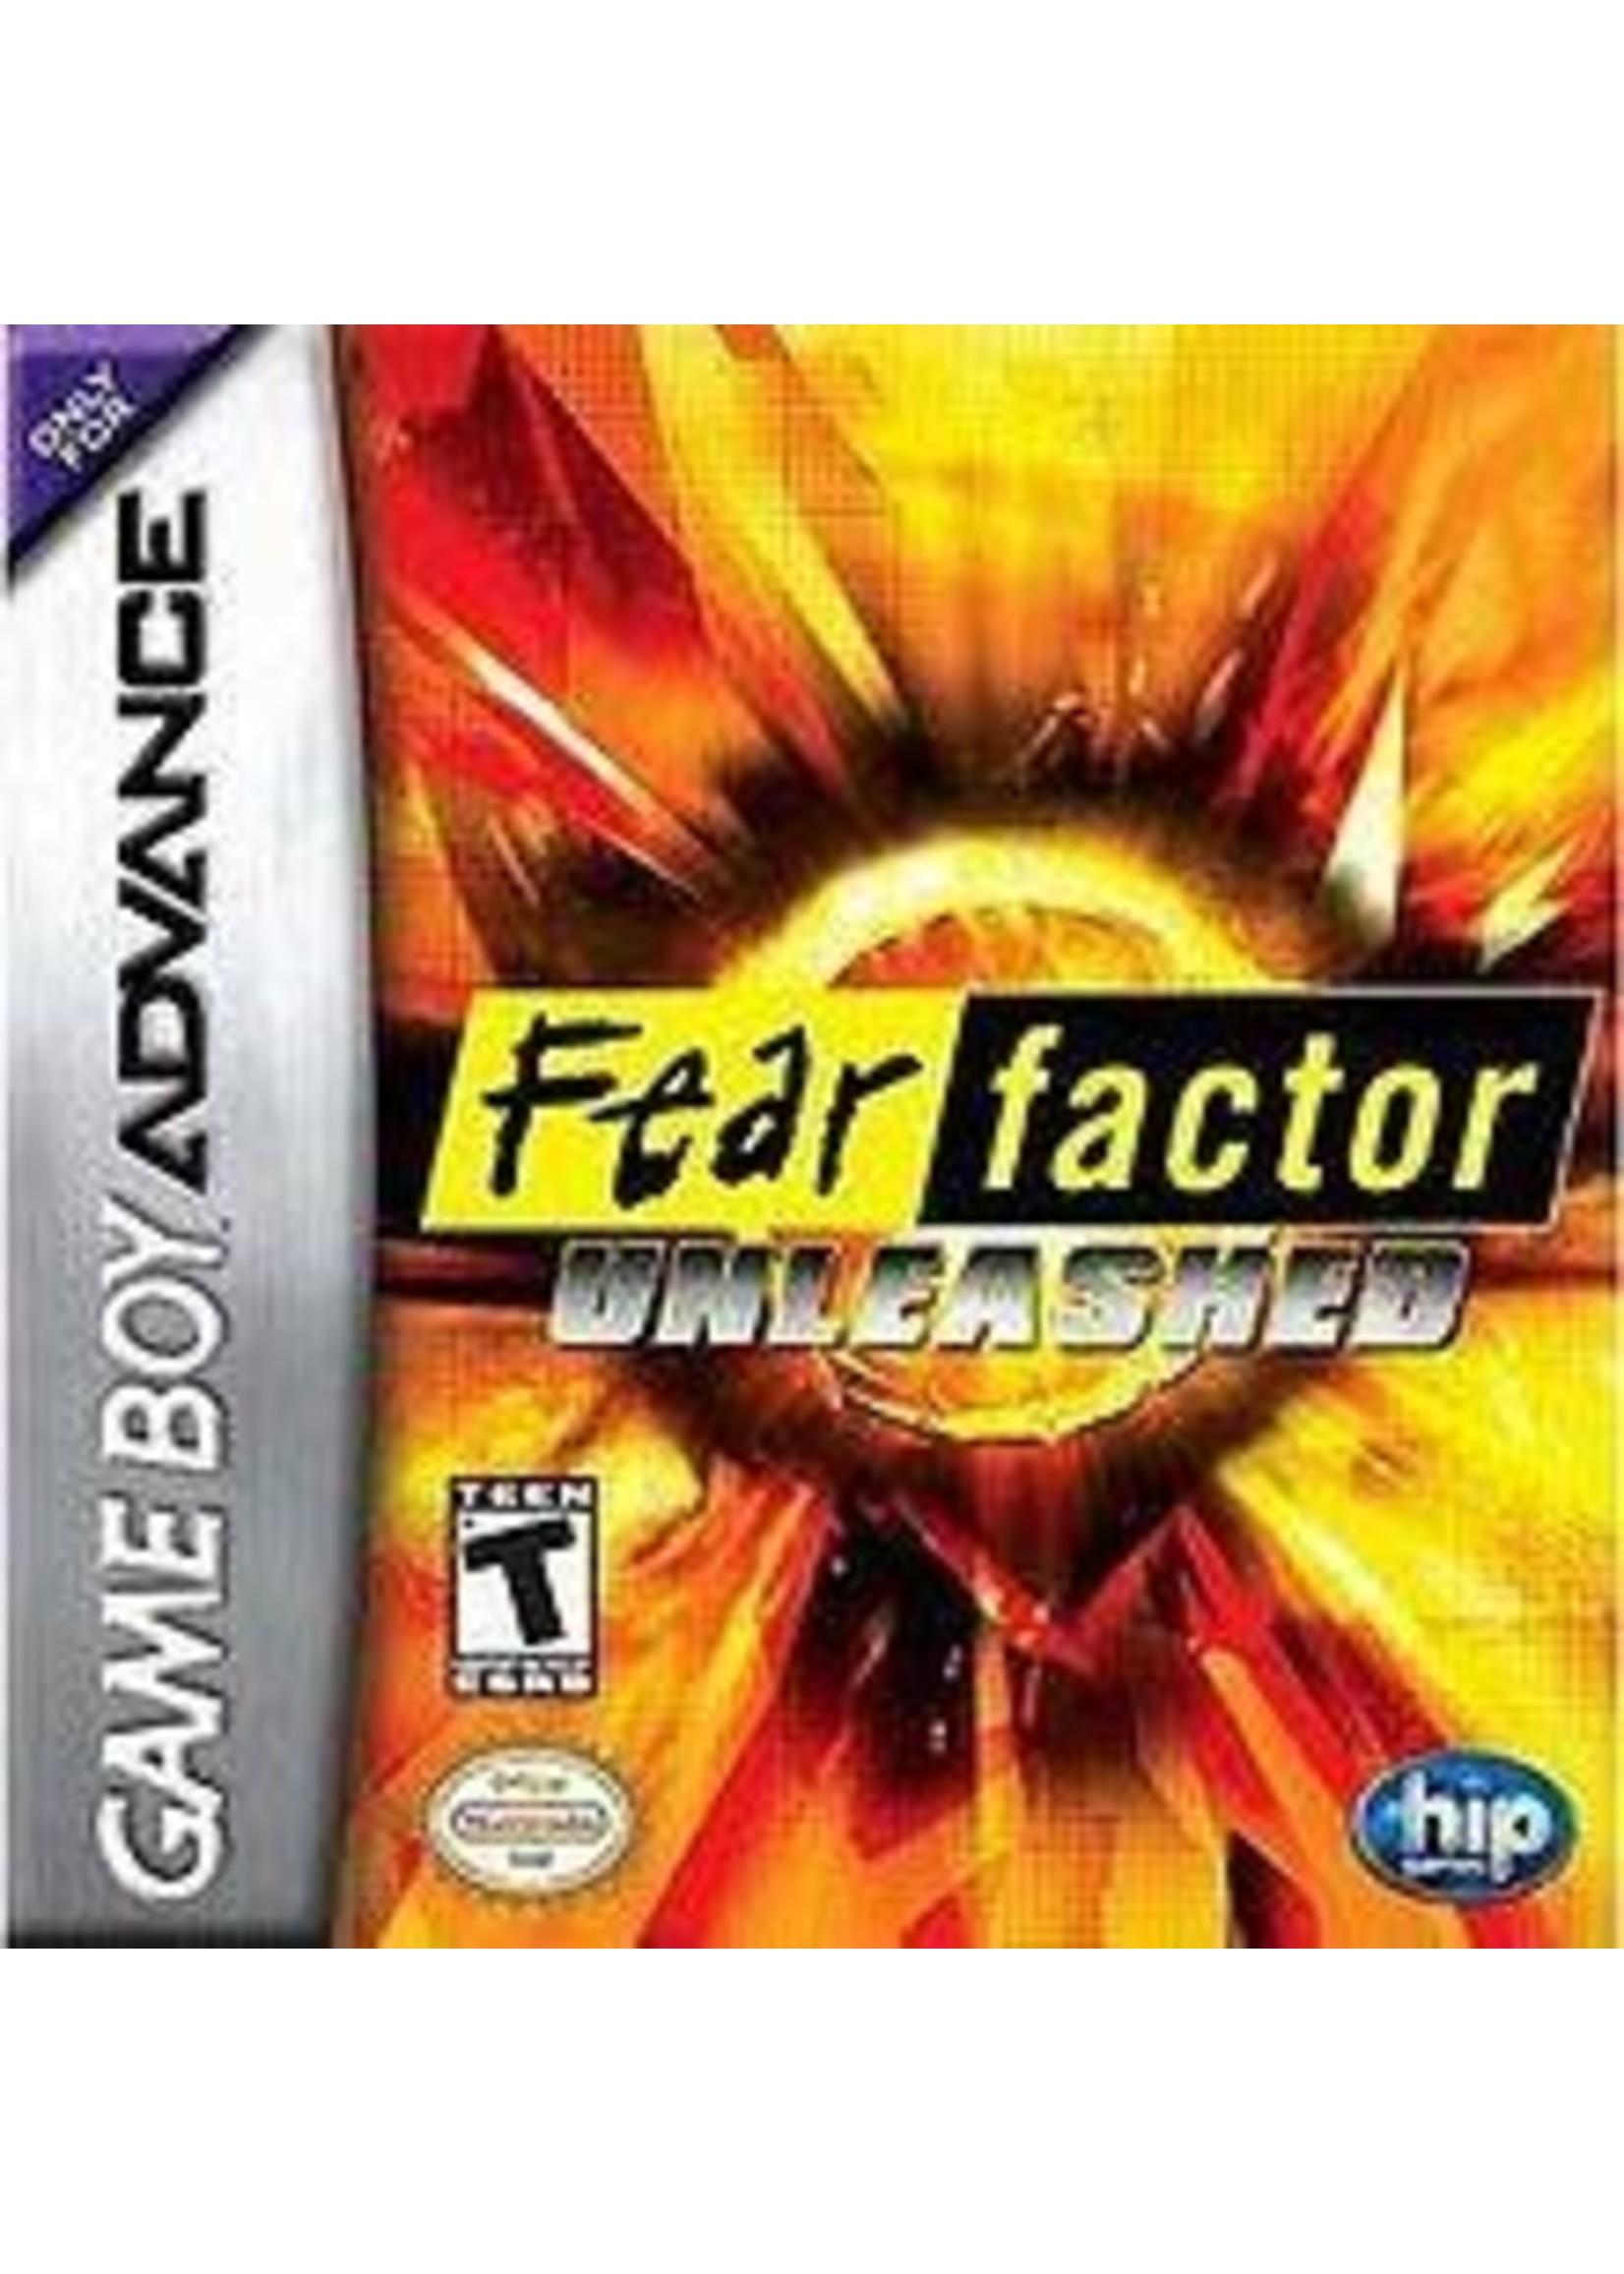 Fear Factor Unleashed GameBoy Advance